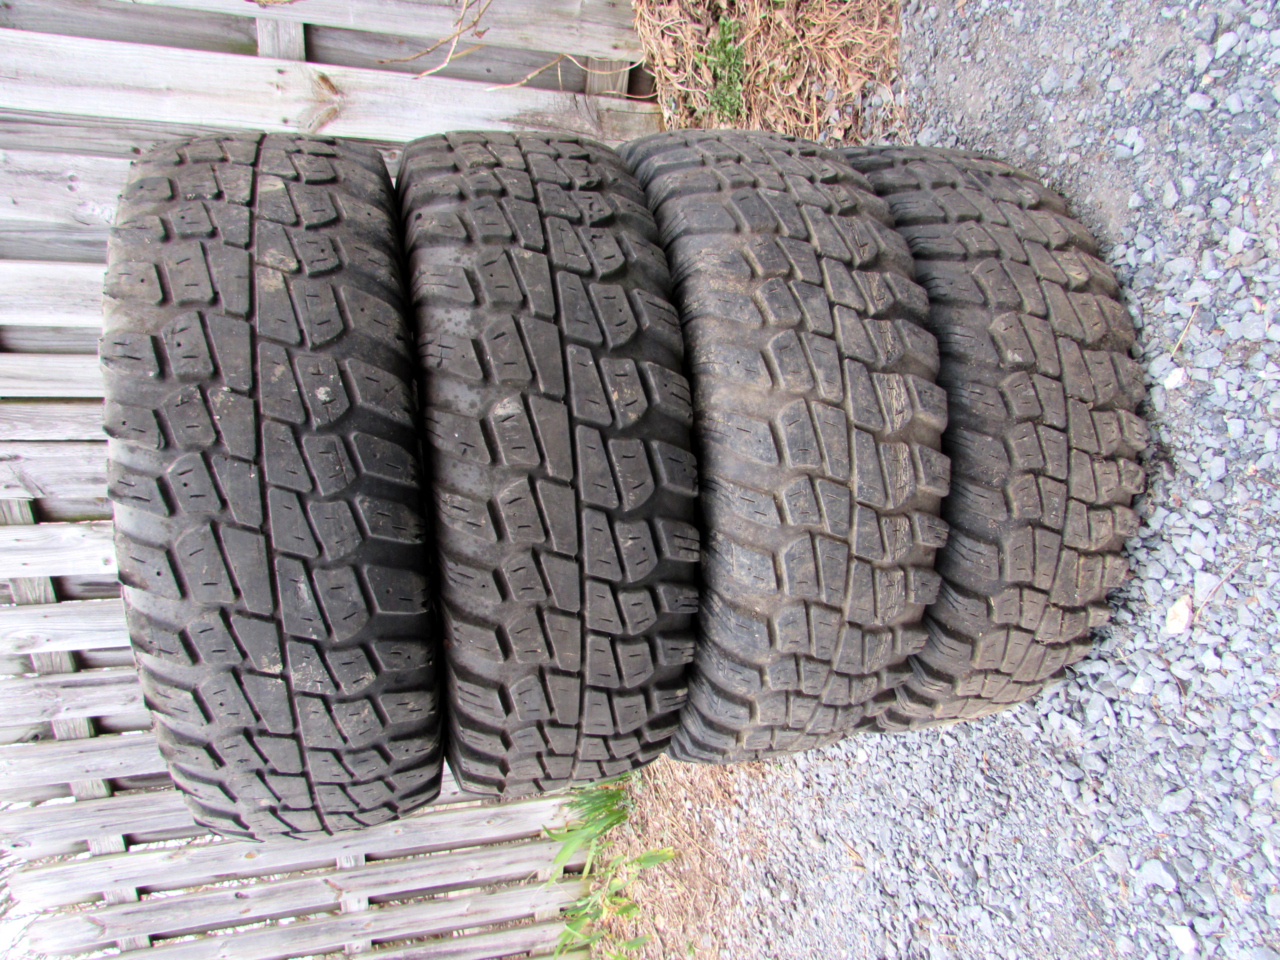 Mud Tires 003 of 10.png